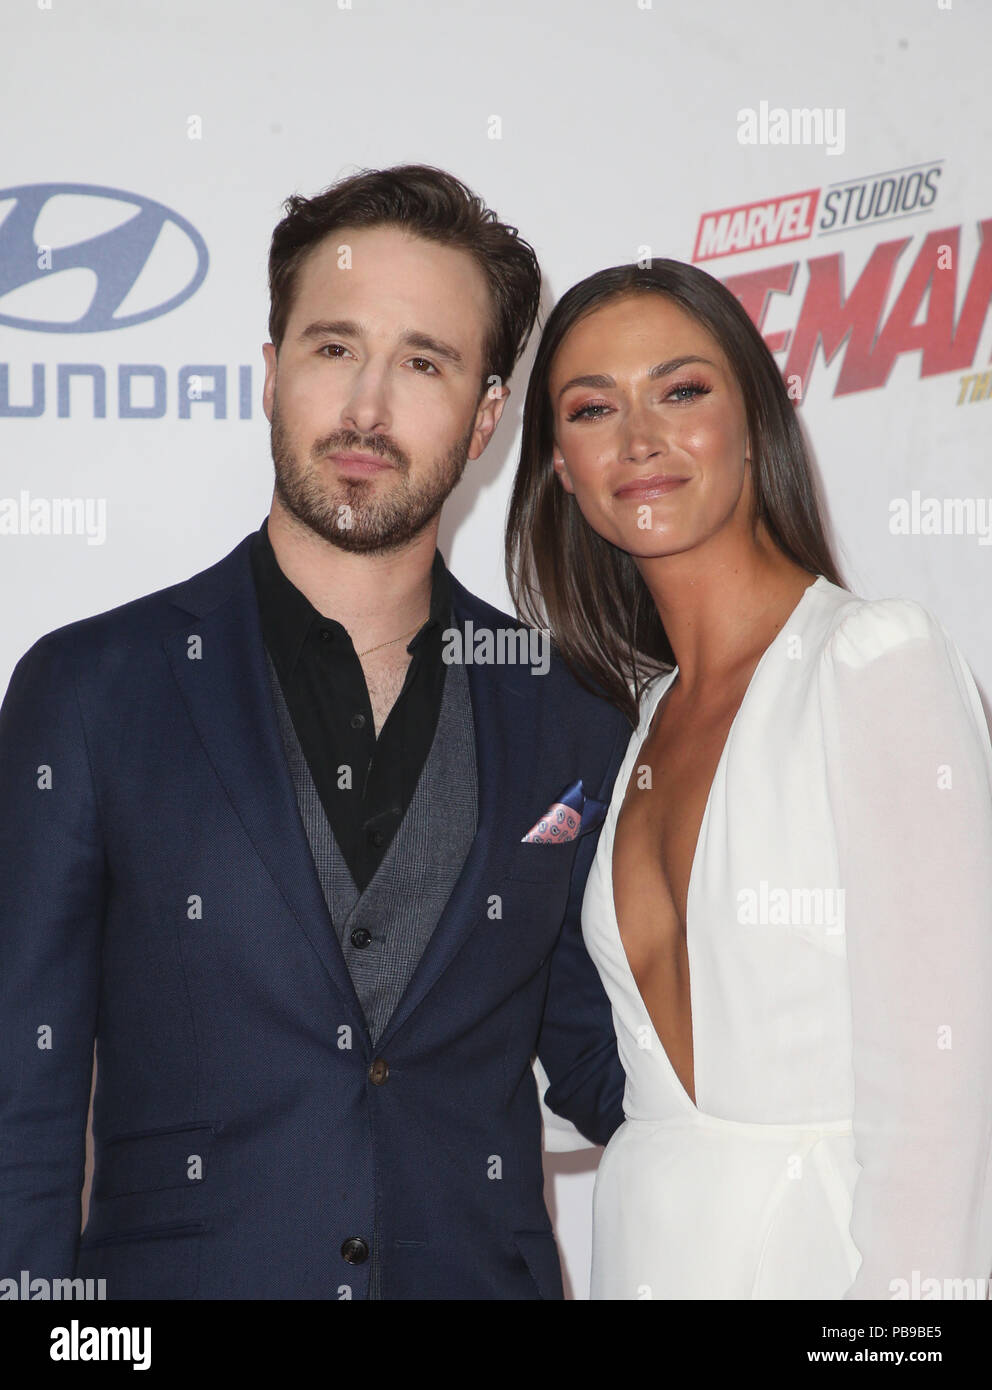 Premiere Of Disney And Marvel S Ant Man And The Wasp Featuring Gabriel Ferrari Christina Makowsky Where Hollywood California United States When 26 Jun 2018 Credit Fayesvision Wenn Com Stock Photo Alamy